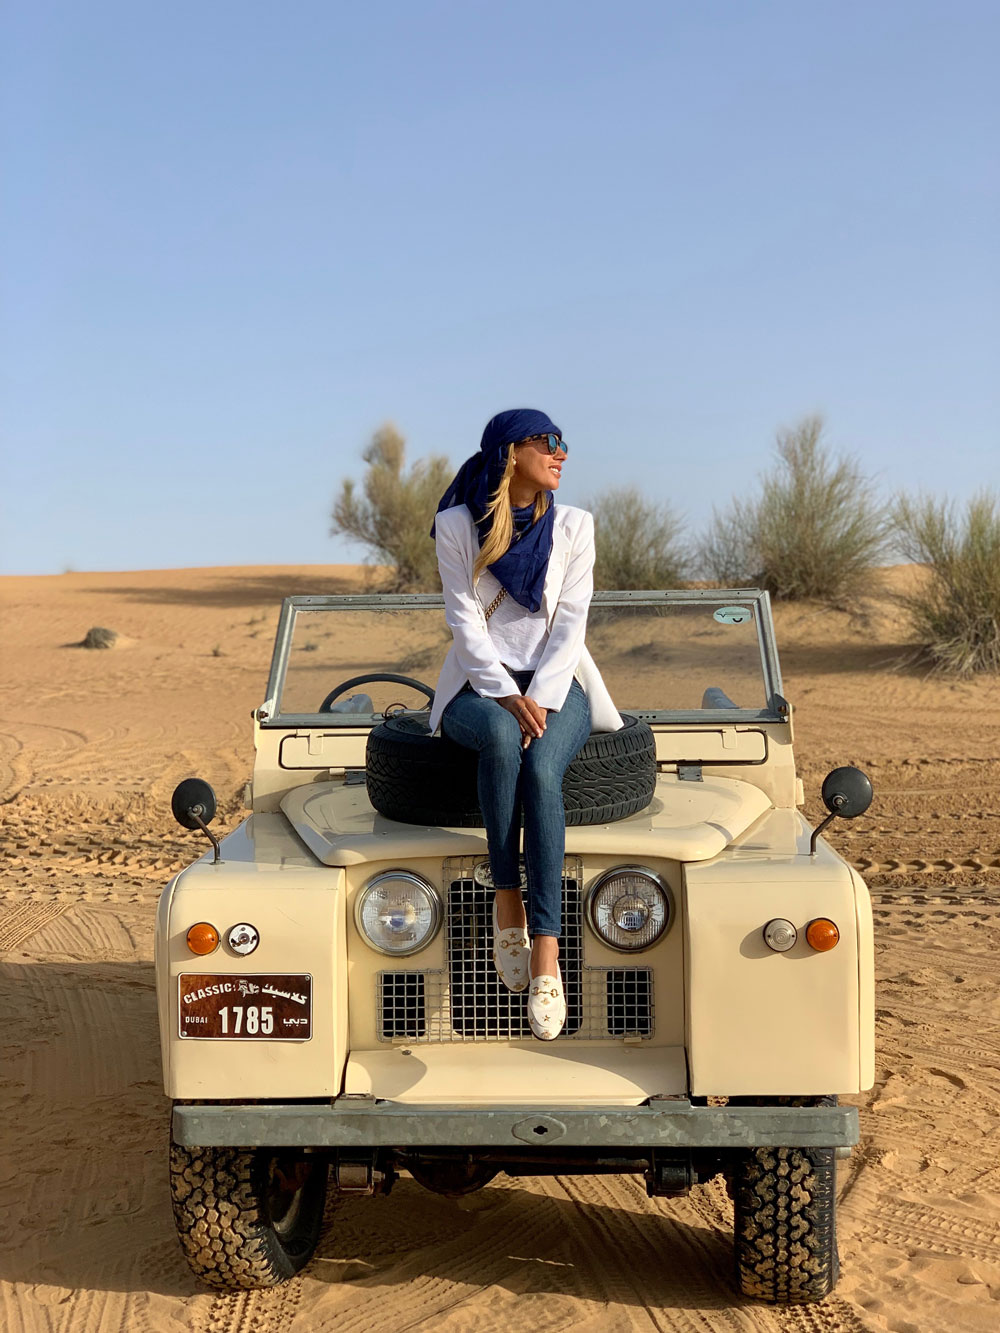 safari, dessert, dubai, travel